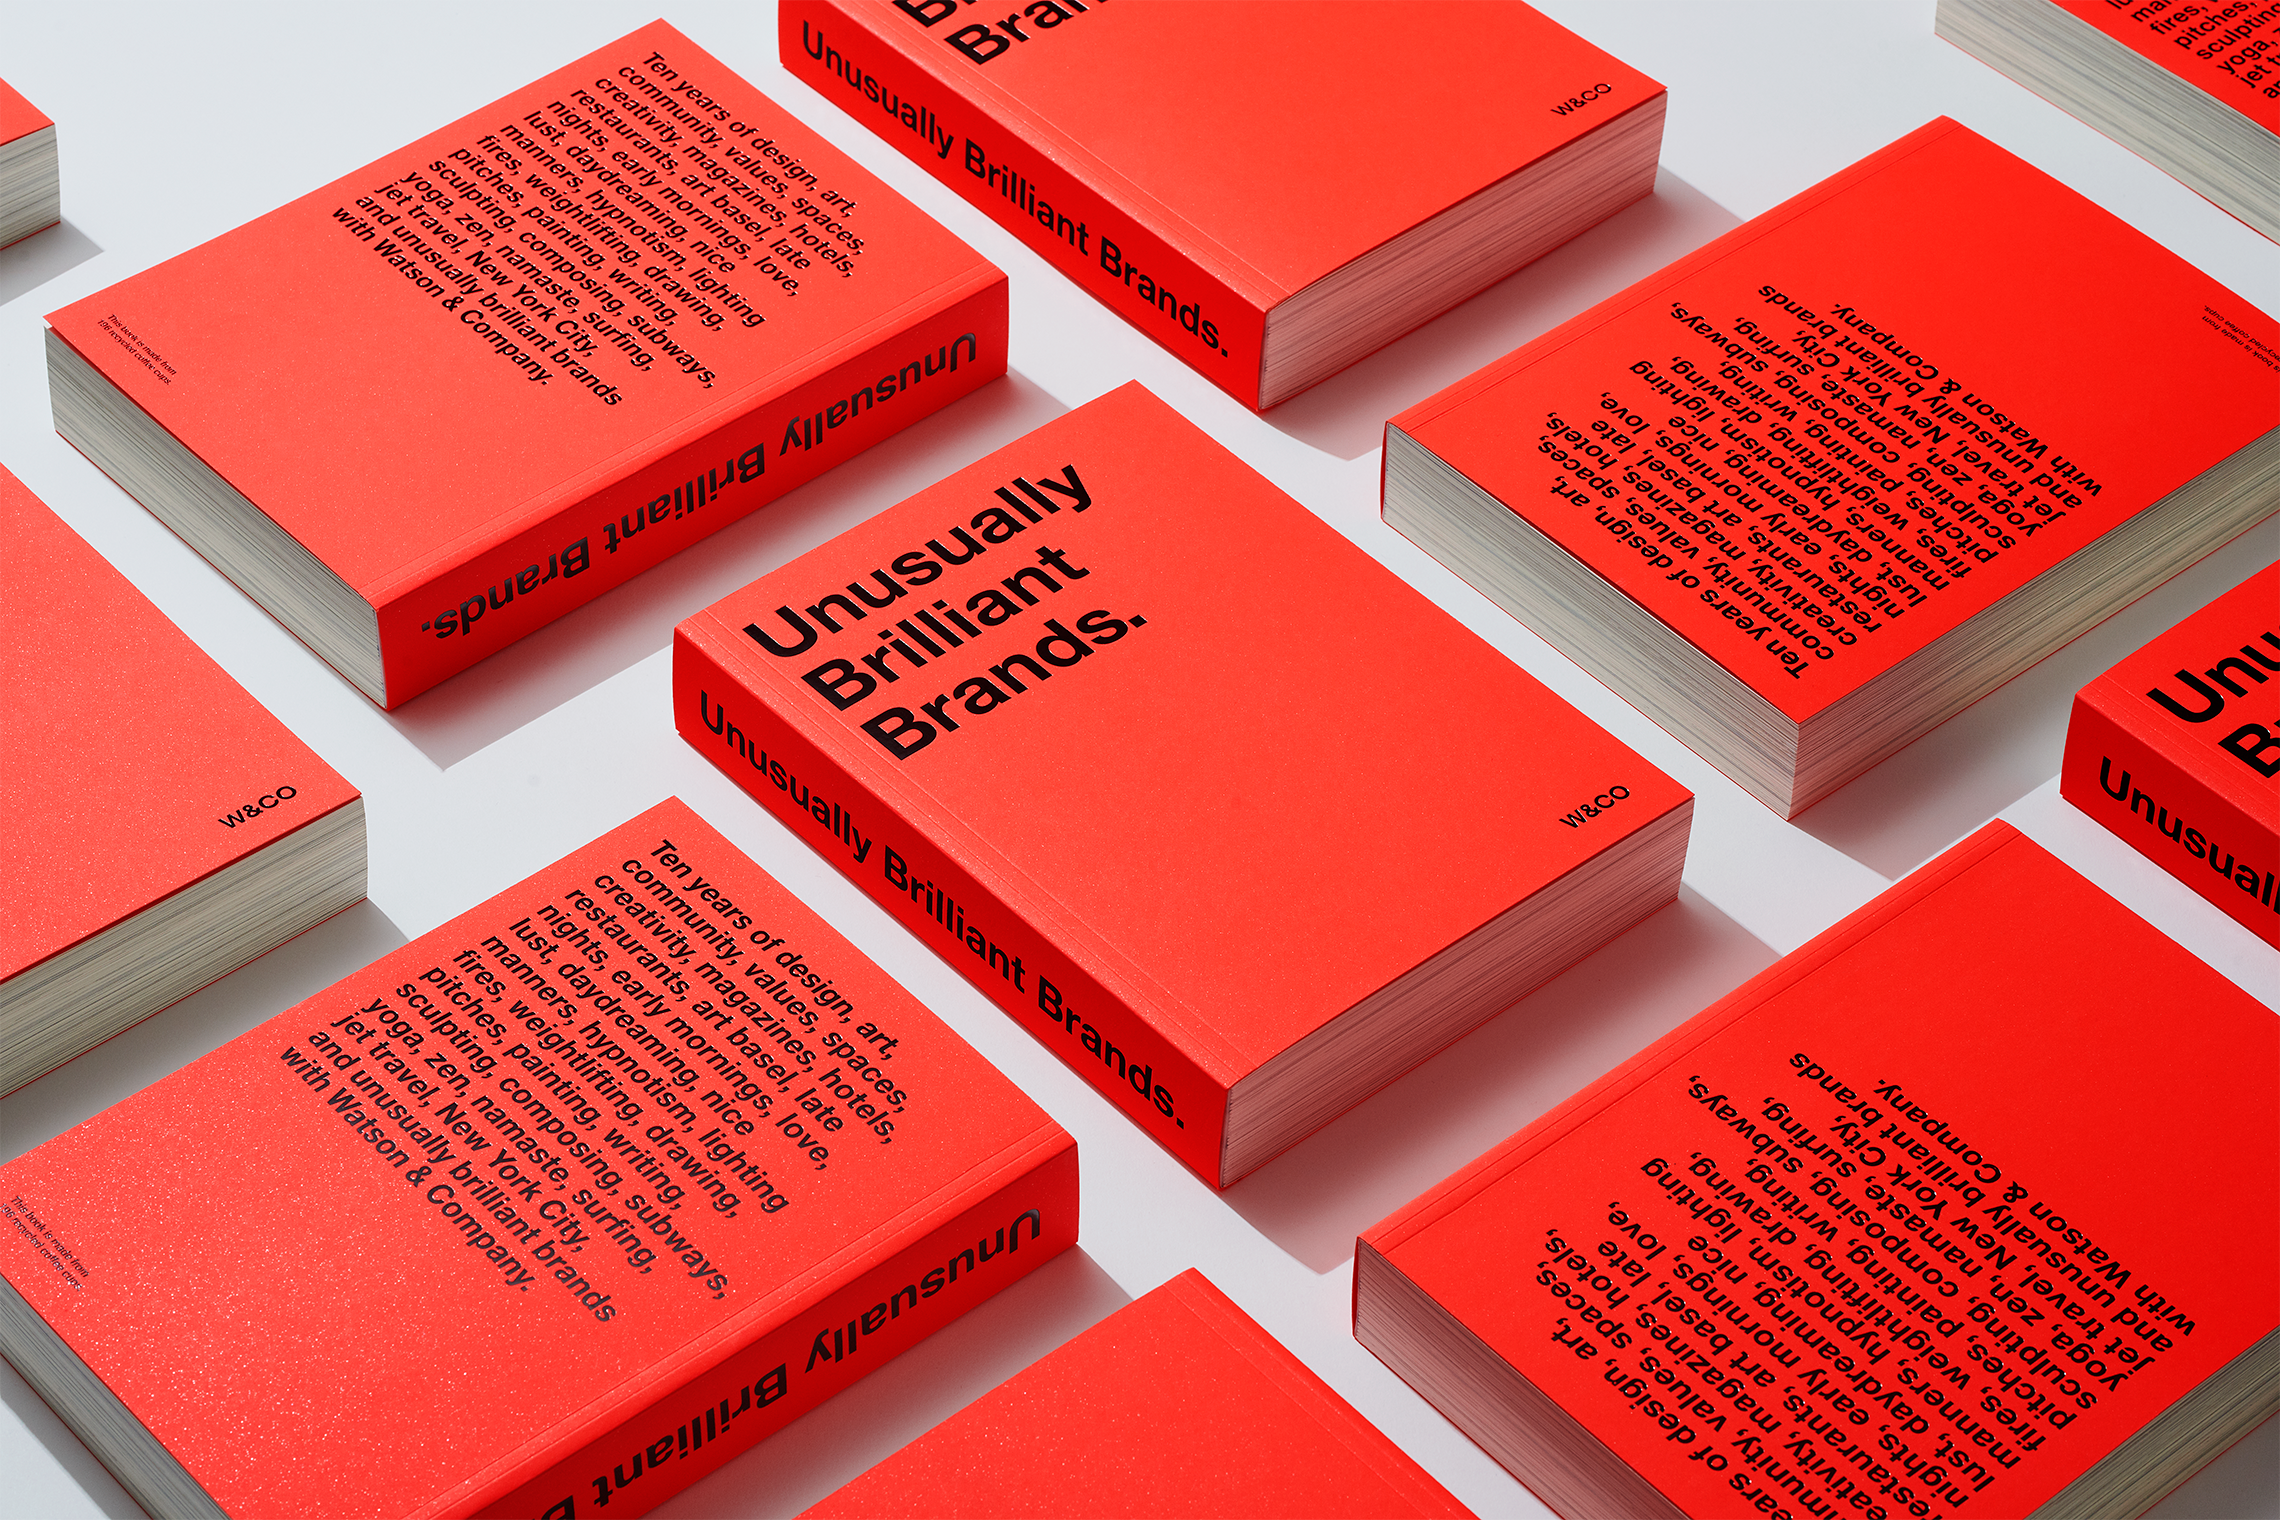 Unusually Brilliant Brands: Watson & Company portfolio